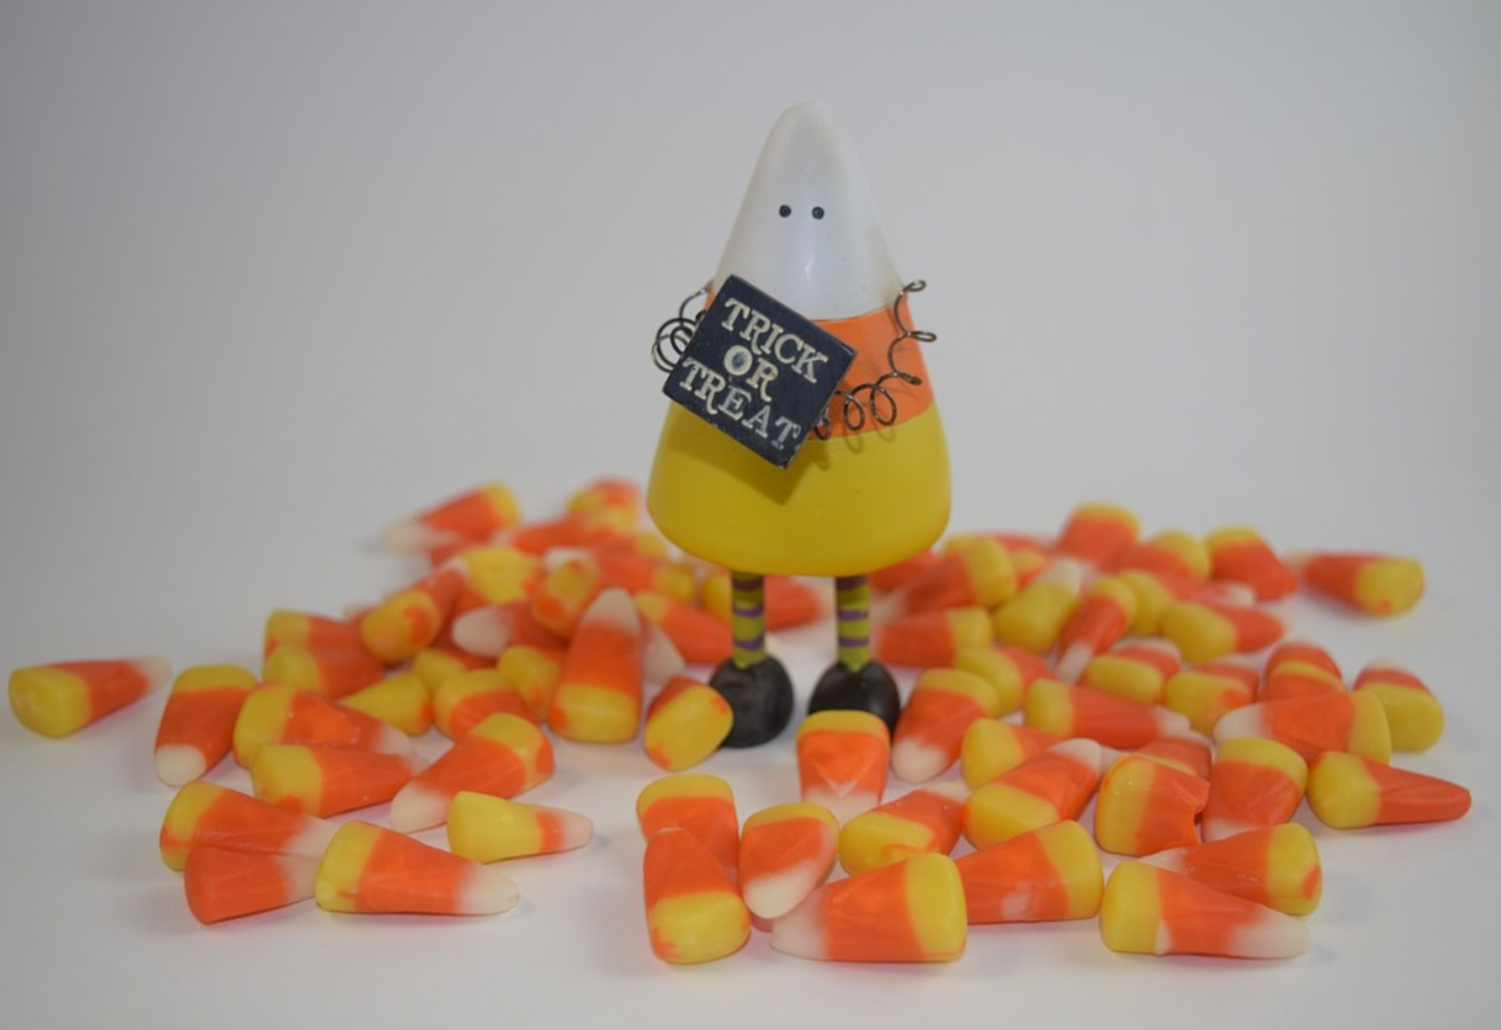 This week the WSN staff discuss their favorite Halloween candies ranging from candy corn to British sweets.